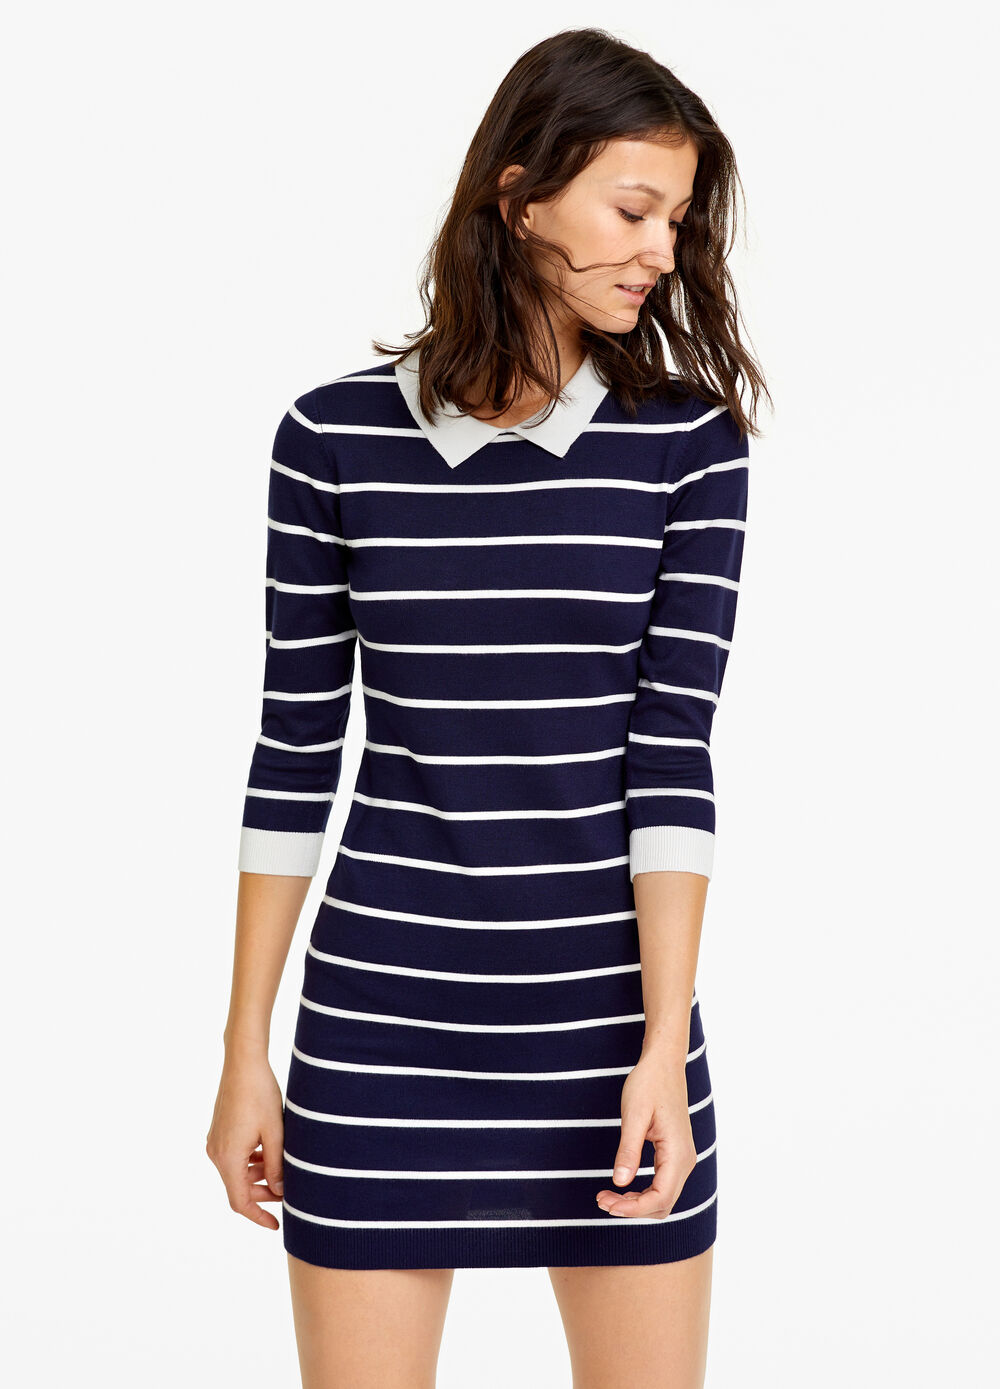 Striped knitted dress with collar